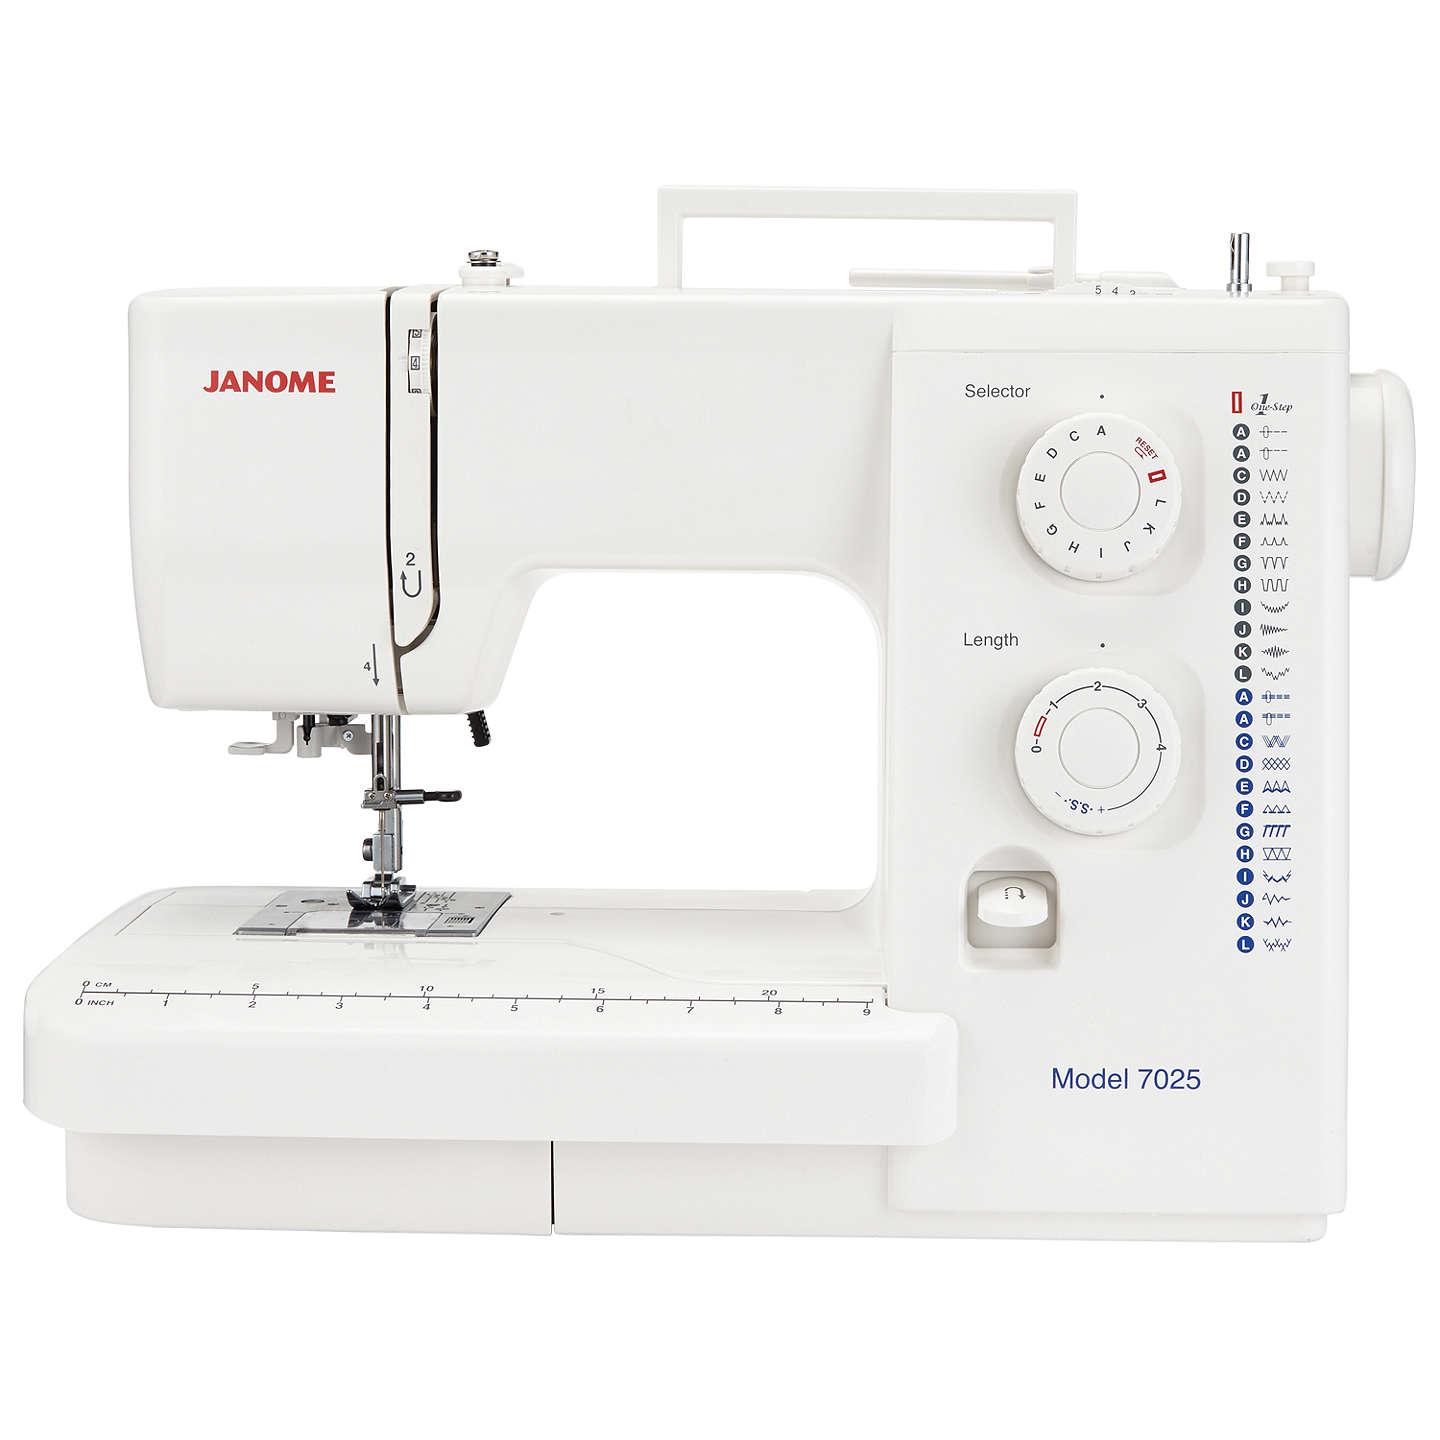 BuyJanome 7025 Sewing Machine Online at johnlewis.com